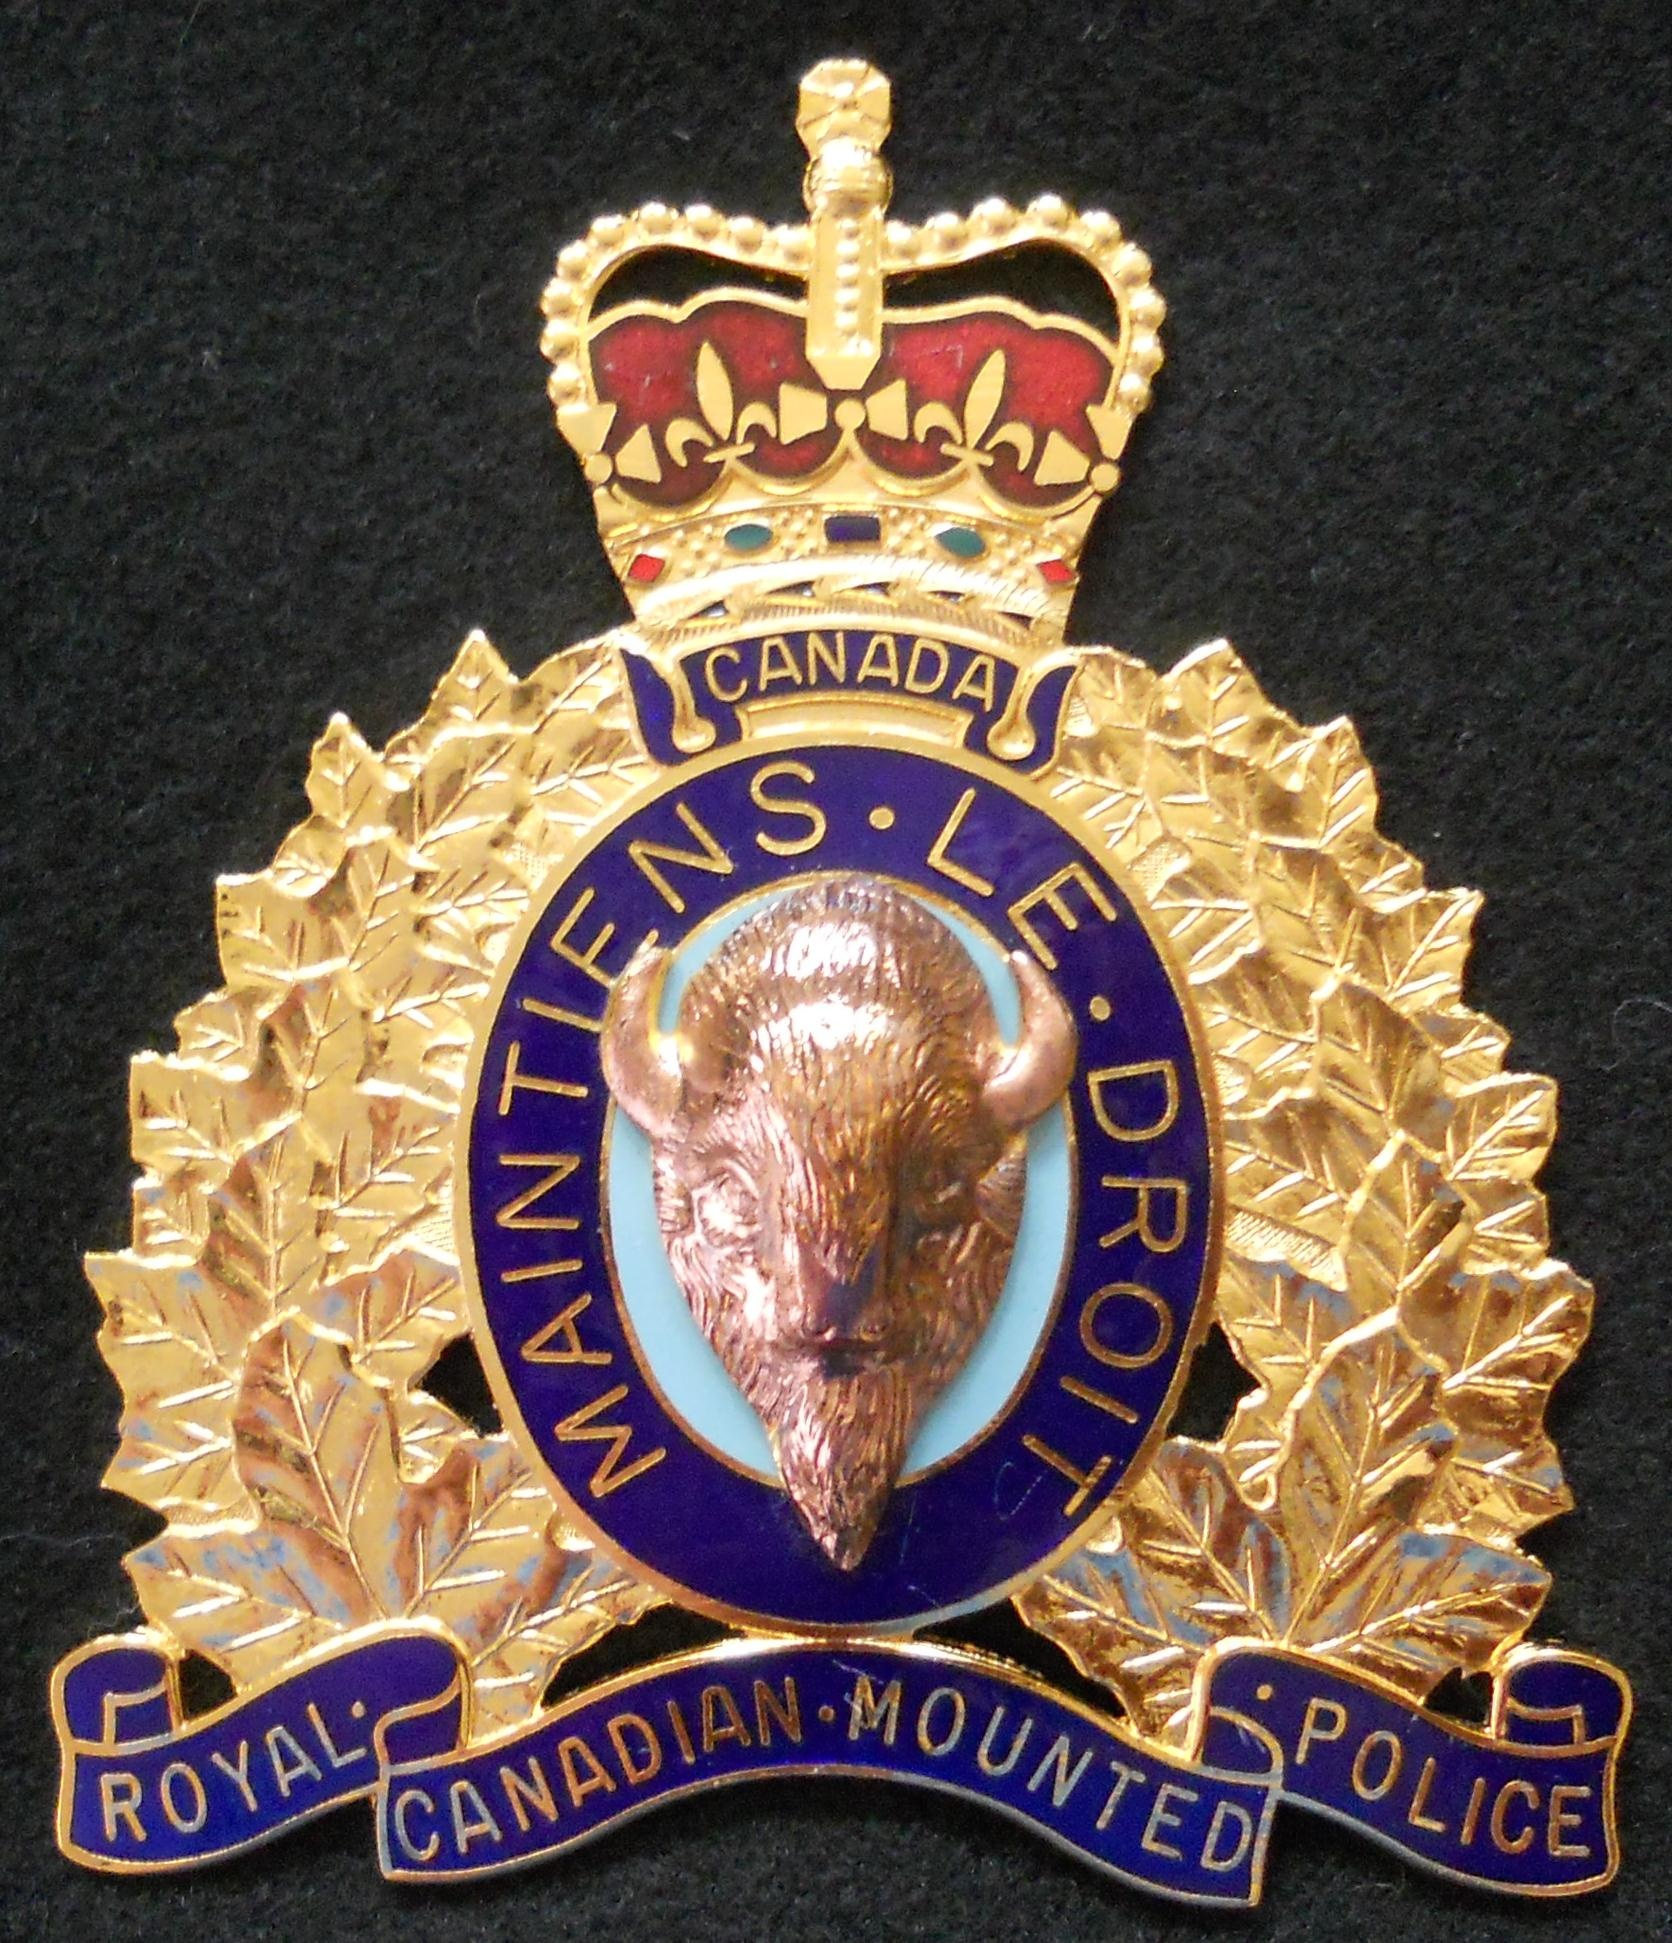 A WOMAN THE LATEST TO BE CHARGED IN A HIGH PROFILE INCIDENT NEAR OKOTOKS